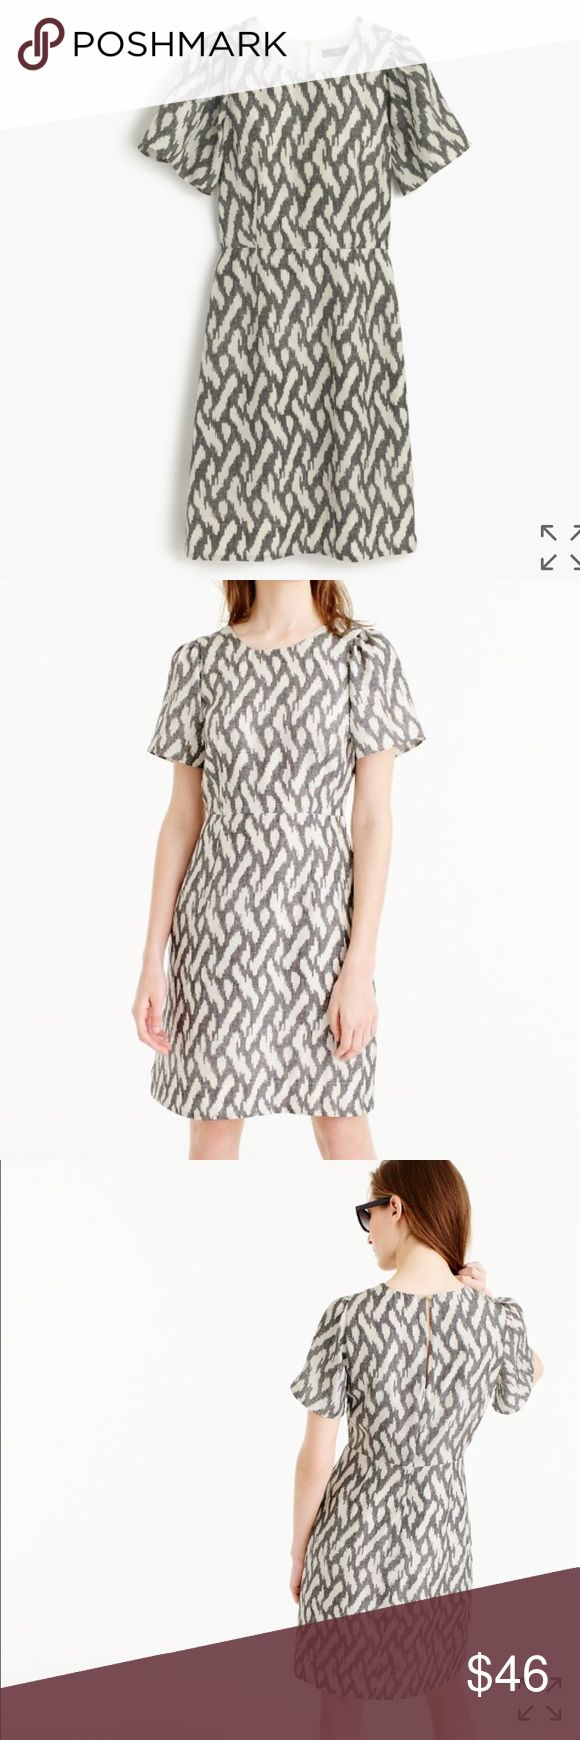 """NWT J. Crew Flutter-Sleeve Dress in Ikat Size 4 NWT J. Crew Flutter-Sleeve Dress in Ikat Size 4. Falls above knee, 37"""" from high point of shoulder (based on size 6). A flattering waist-defining dress with slightly fluttery sleeves, made in an ikat-covered silk fabric. Silk. Back keyhole. Lined. Dry clean only. J. Crew Dresses"""